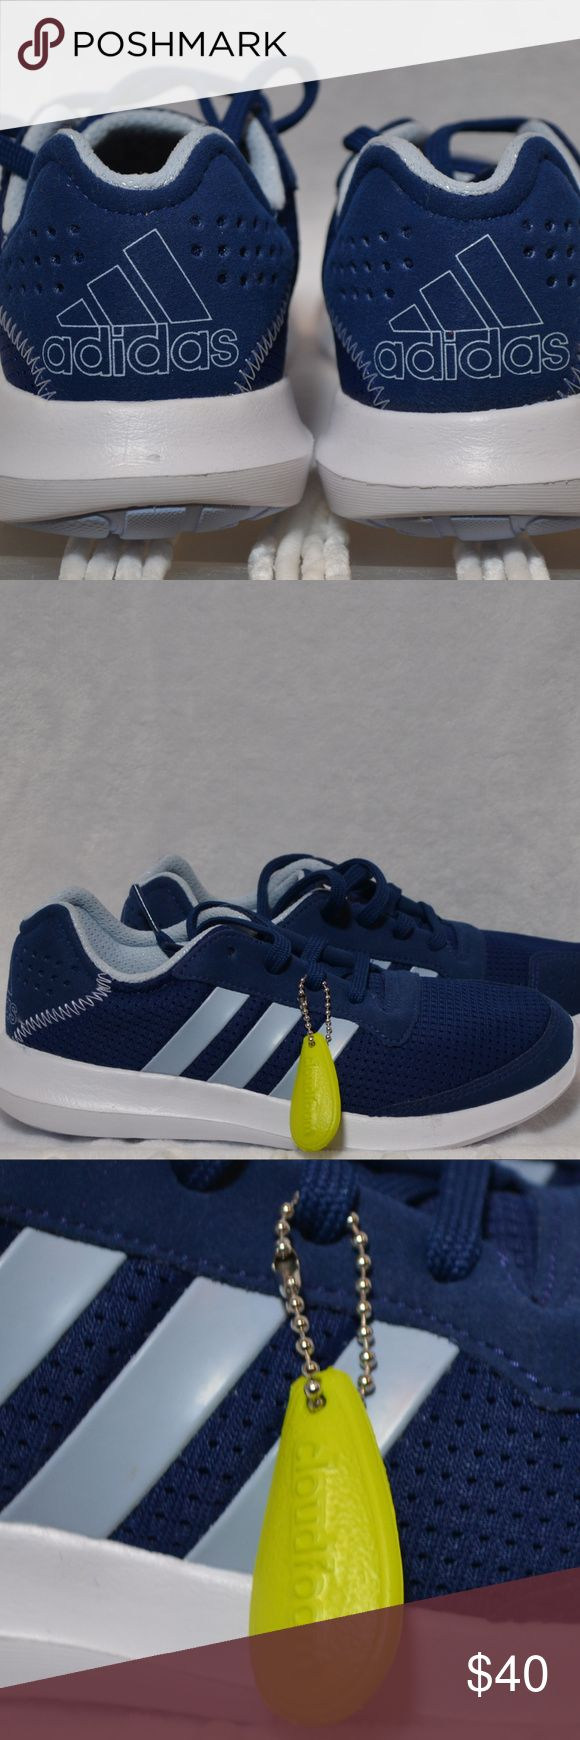 "ADIDAS Cloudfoam Running Shoes These brand new  Adidas shoes feature:  - Light weight sole with breath-able body - Navy blue on body with light blue accents - Key chain accessory with ""Cloudfoam"" on it  Would be happy to answer any measurement questions or other concerns:) adidas Shoes Athletic Shoes"